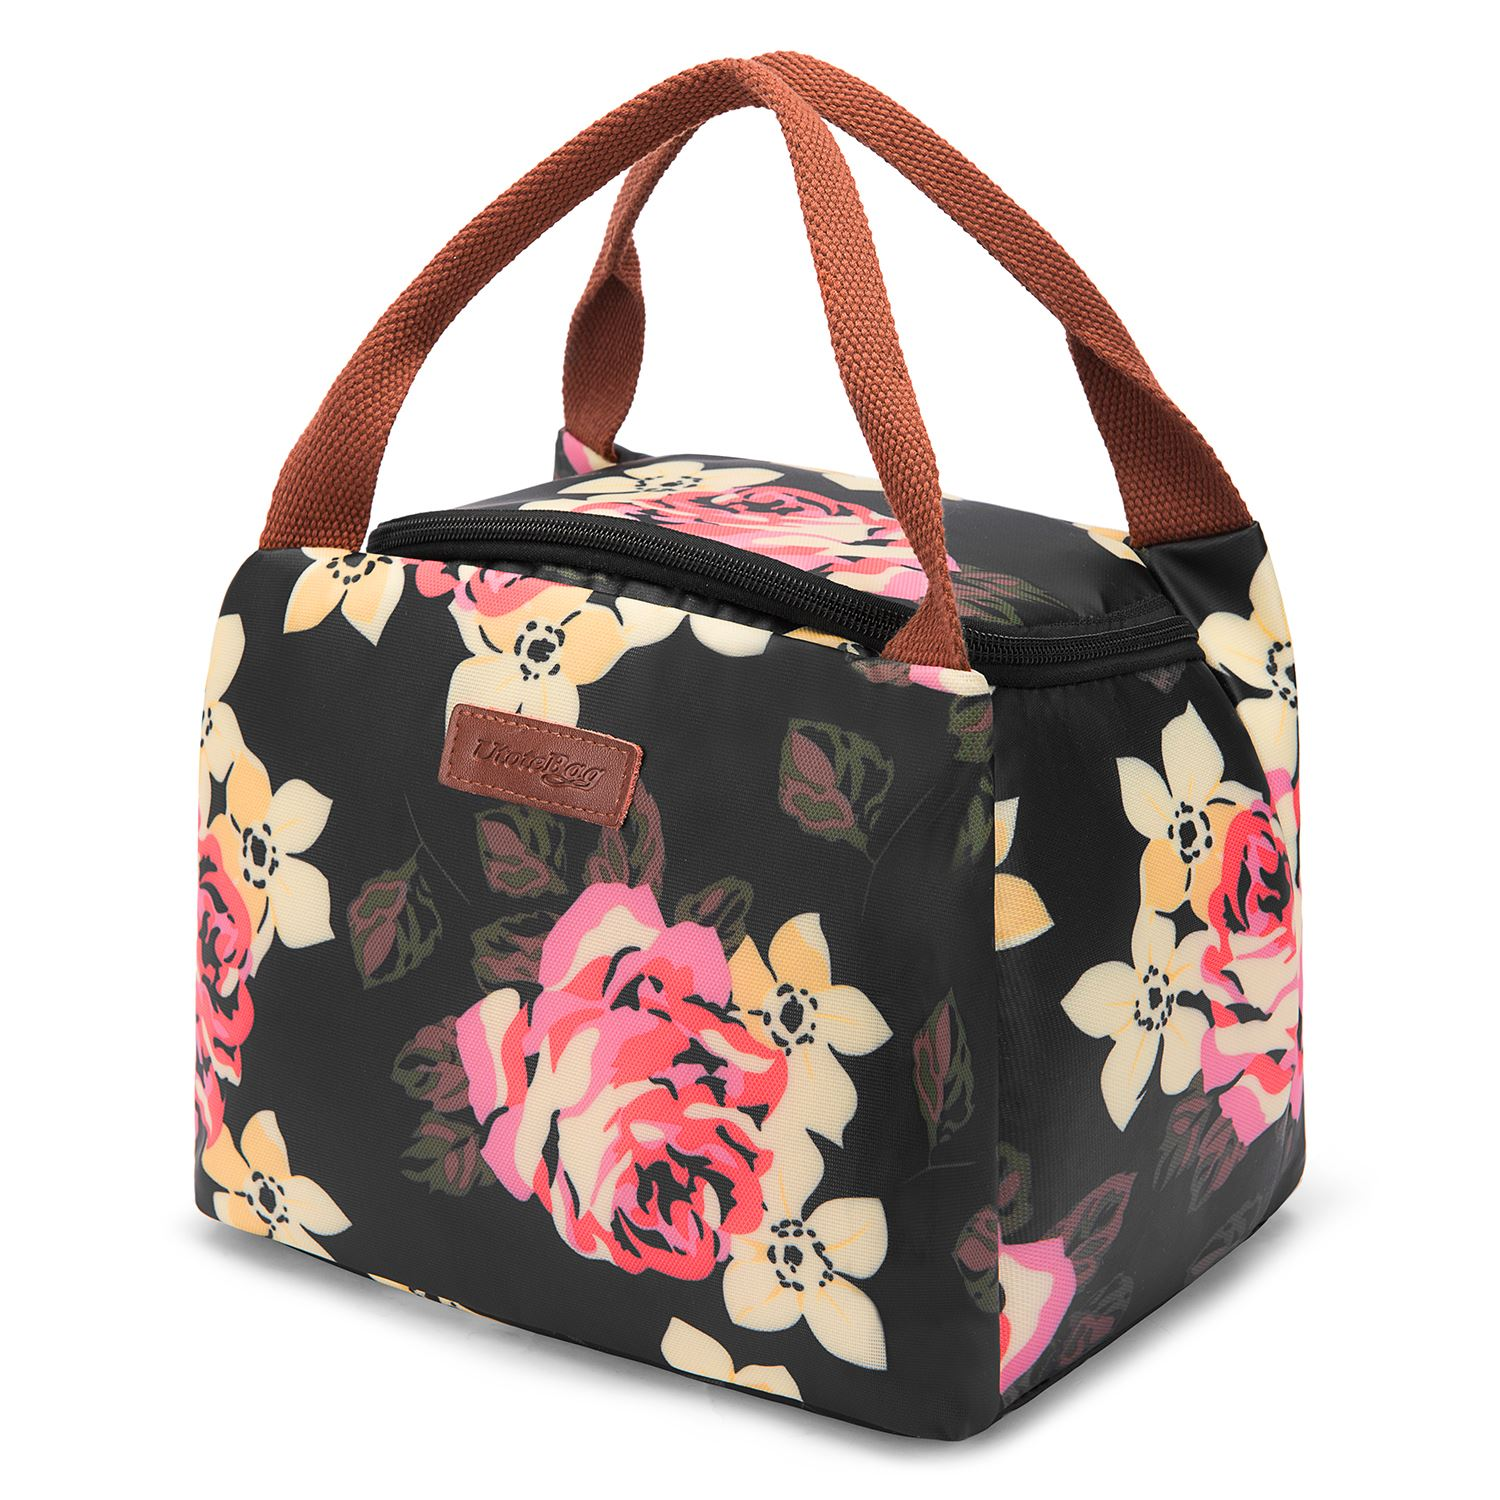 Children Insulated Lunch Bag Thermal Tote Cooler Picnic Food Storage Box 6A